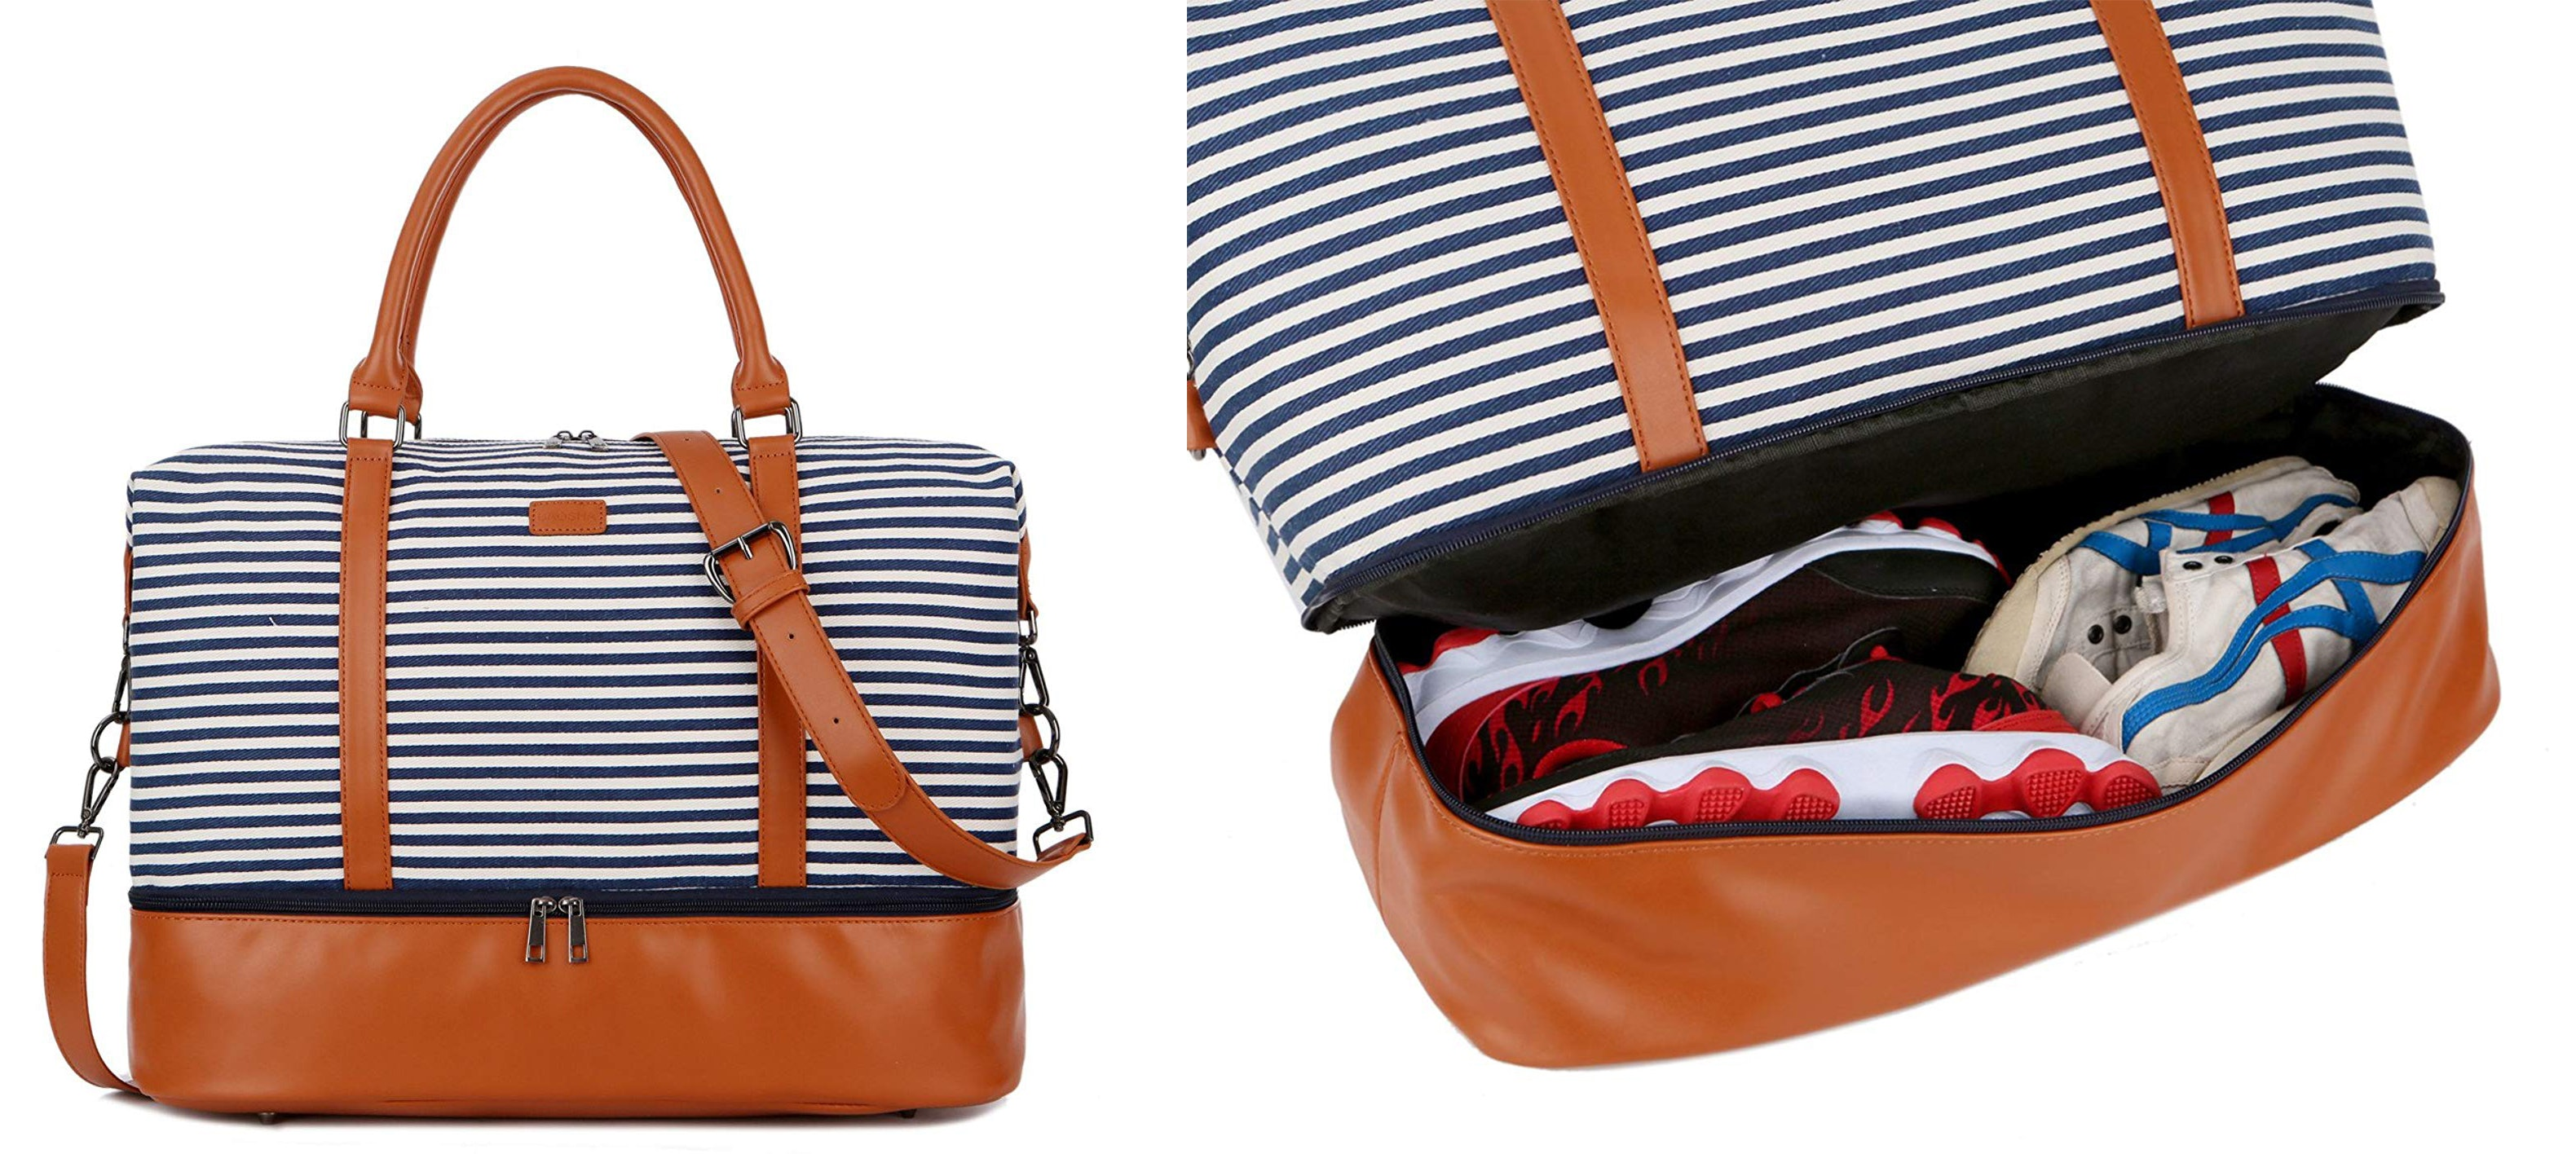 0d43b7fbaa6d The 5 Best Weekender Bags With Shoe Compartments